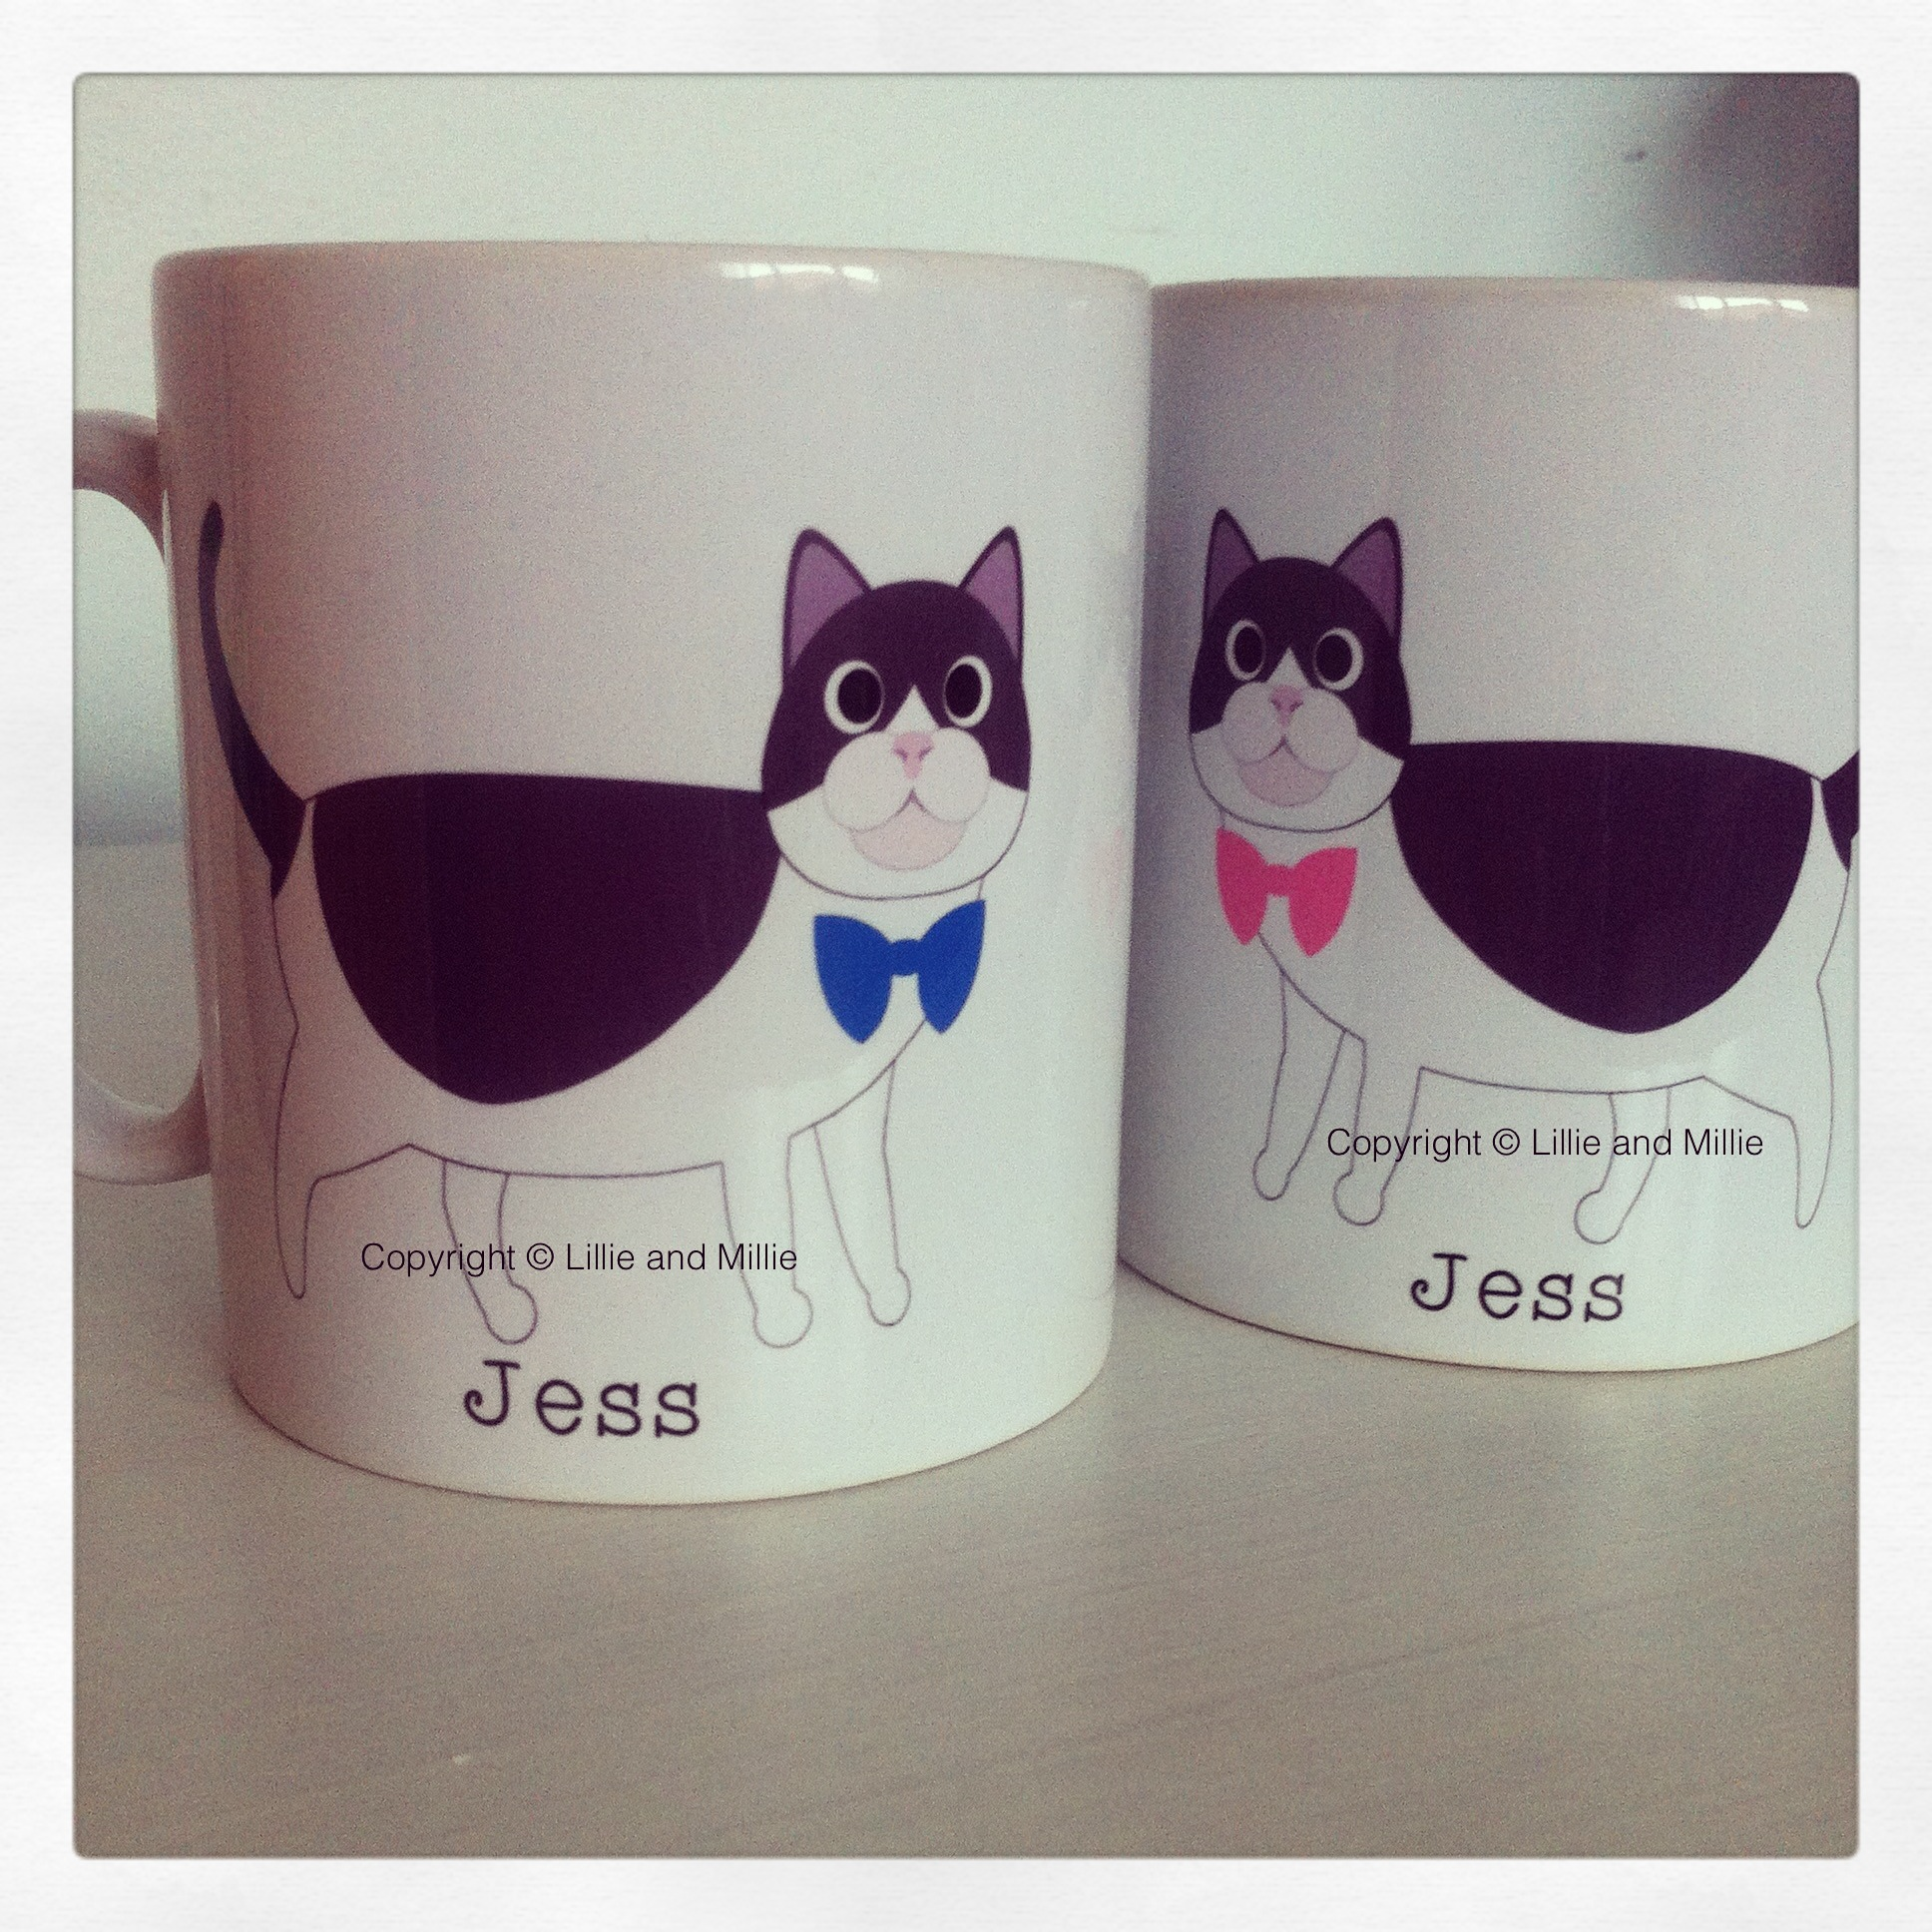 Lillie and Millie Cute and Cuddly Mug